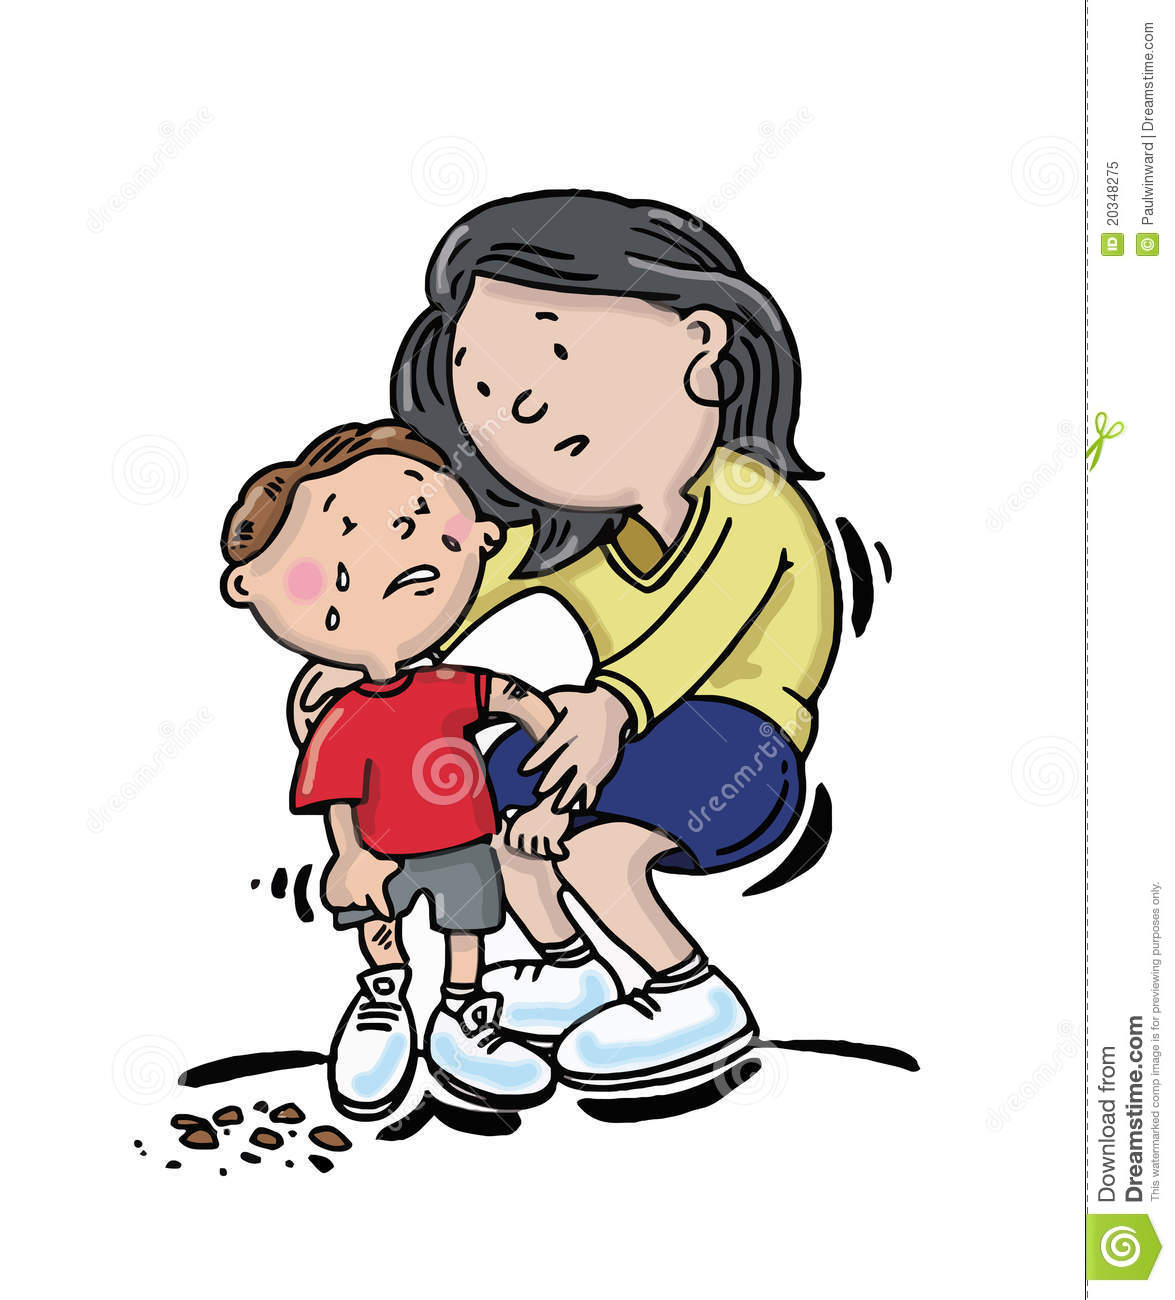 Child With Sore Knee Royalty Free Stock Photo   Image  20348275